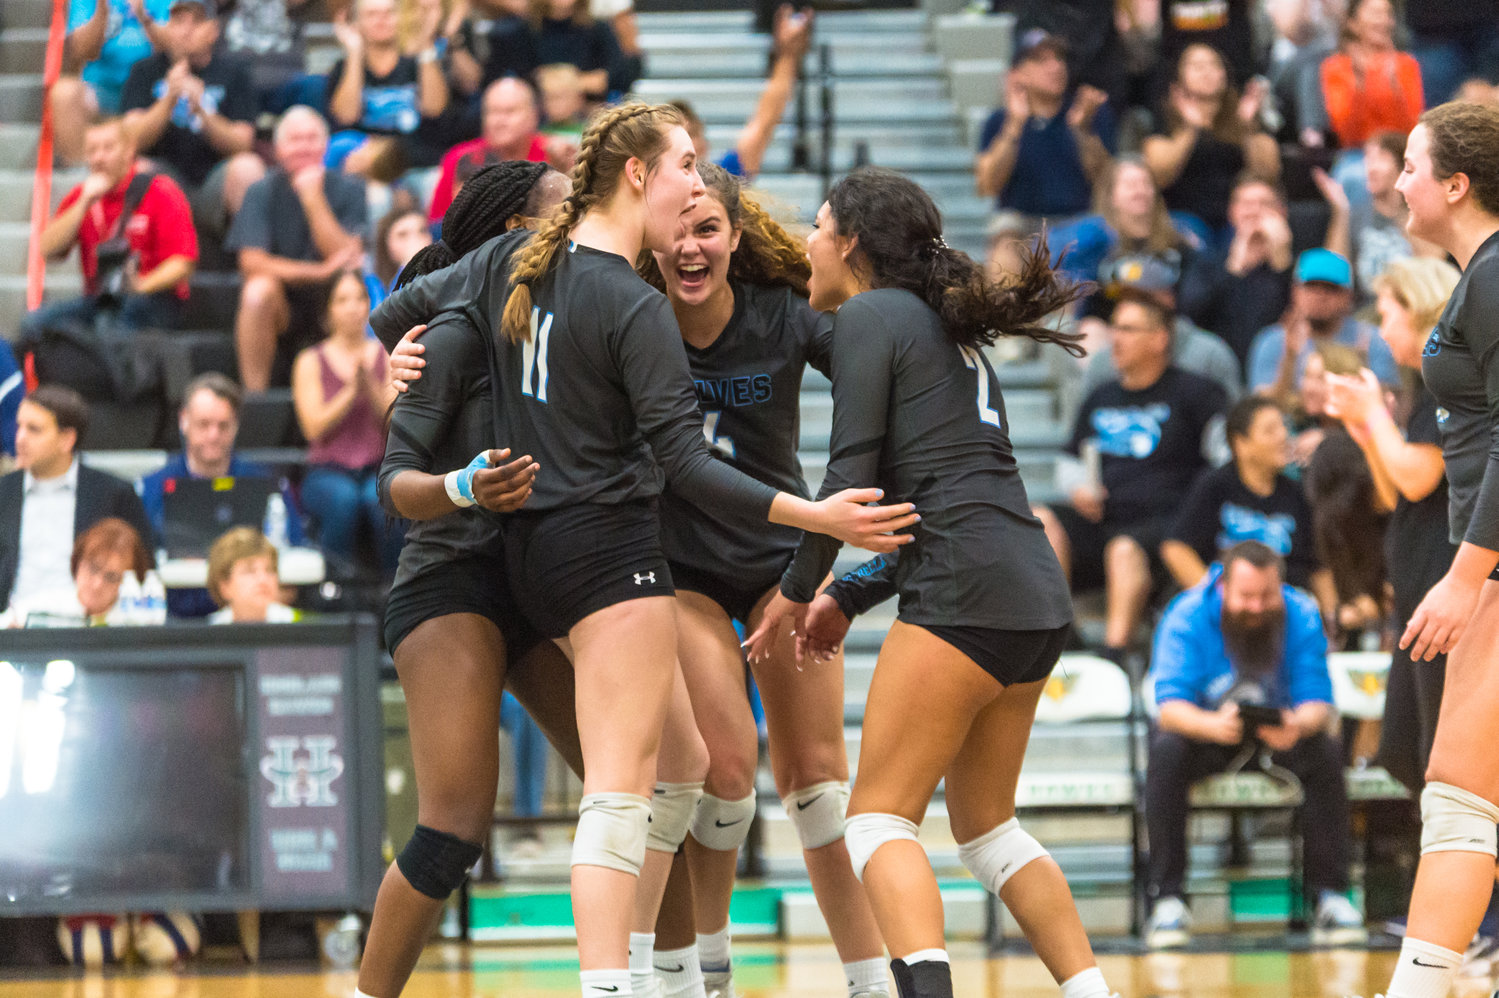 Estrella Foothills sophomore Emma Barber (#11), junior Tessa Kamarata (#2), junior Nayeli Mancilla (#4) and senior Aniya Mitchell celebrate a point during the Wolves' late match surge in the 4A state girls volleyball final Nov. 13 at Highland High School in Gilbert.